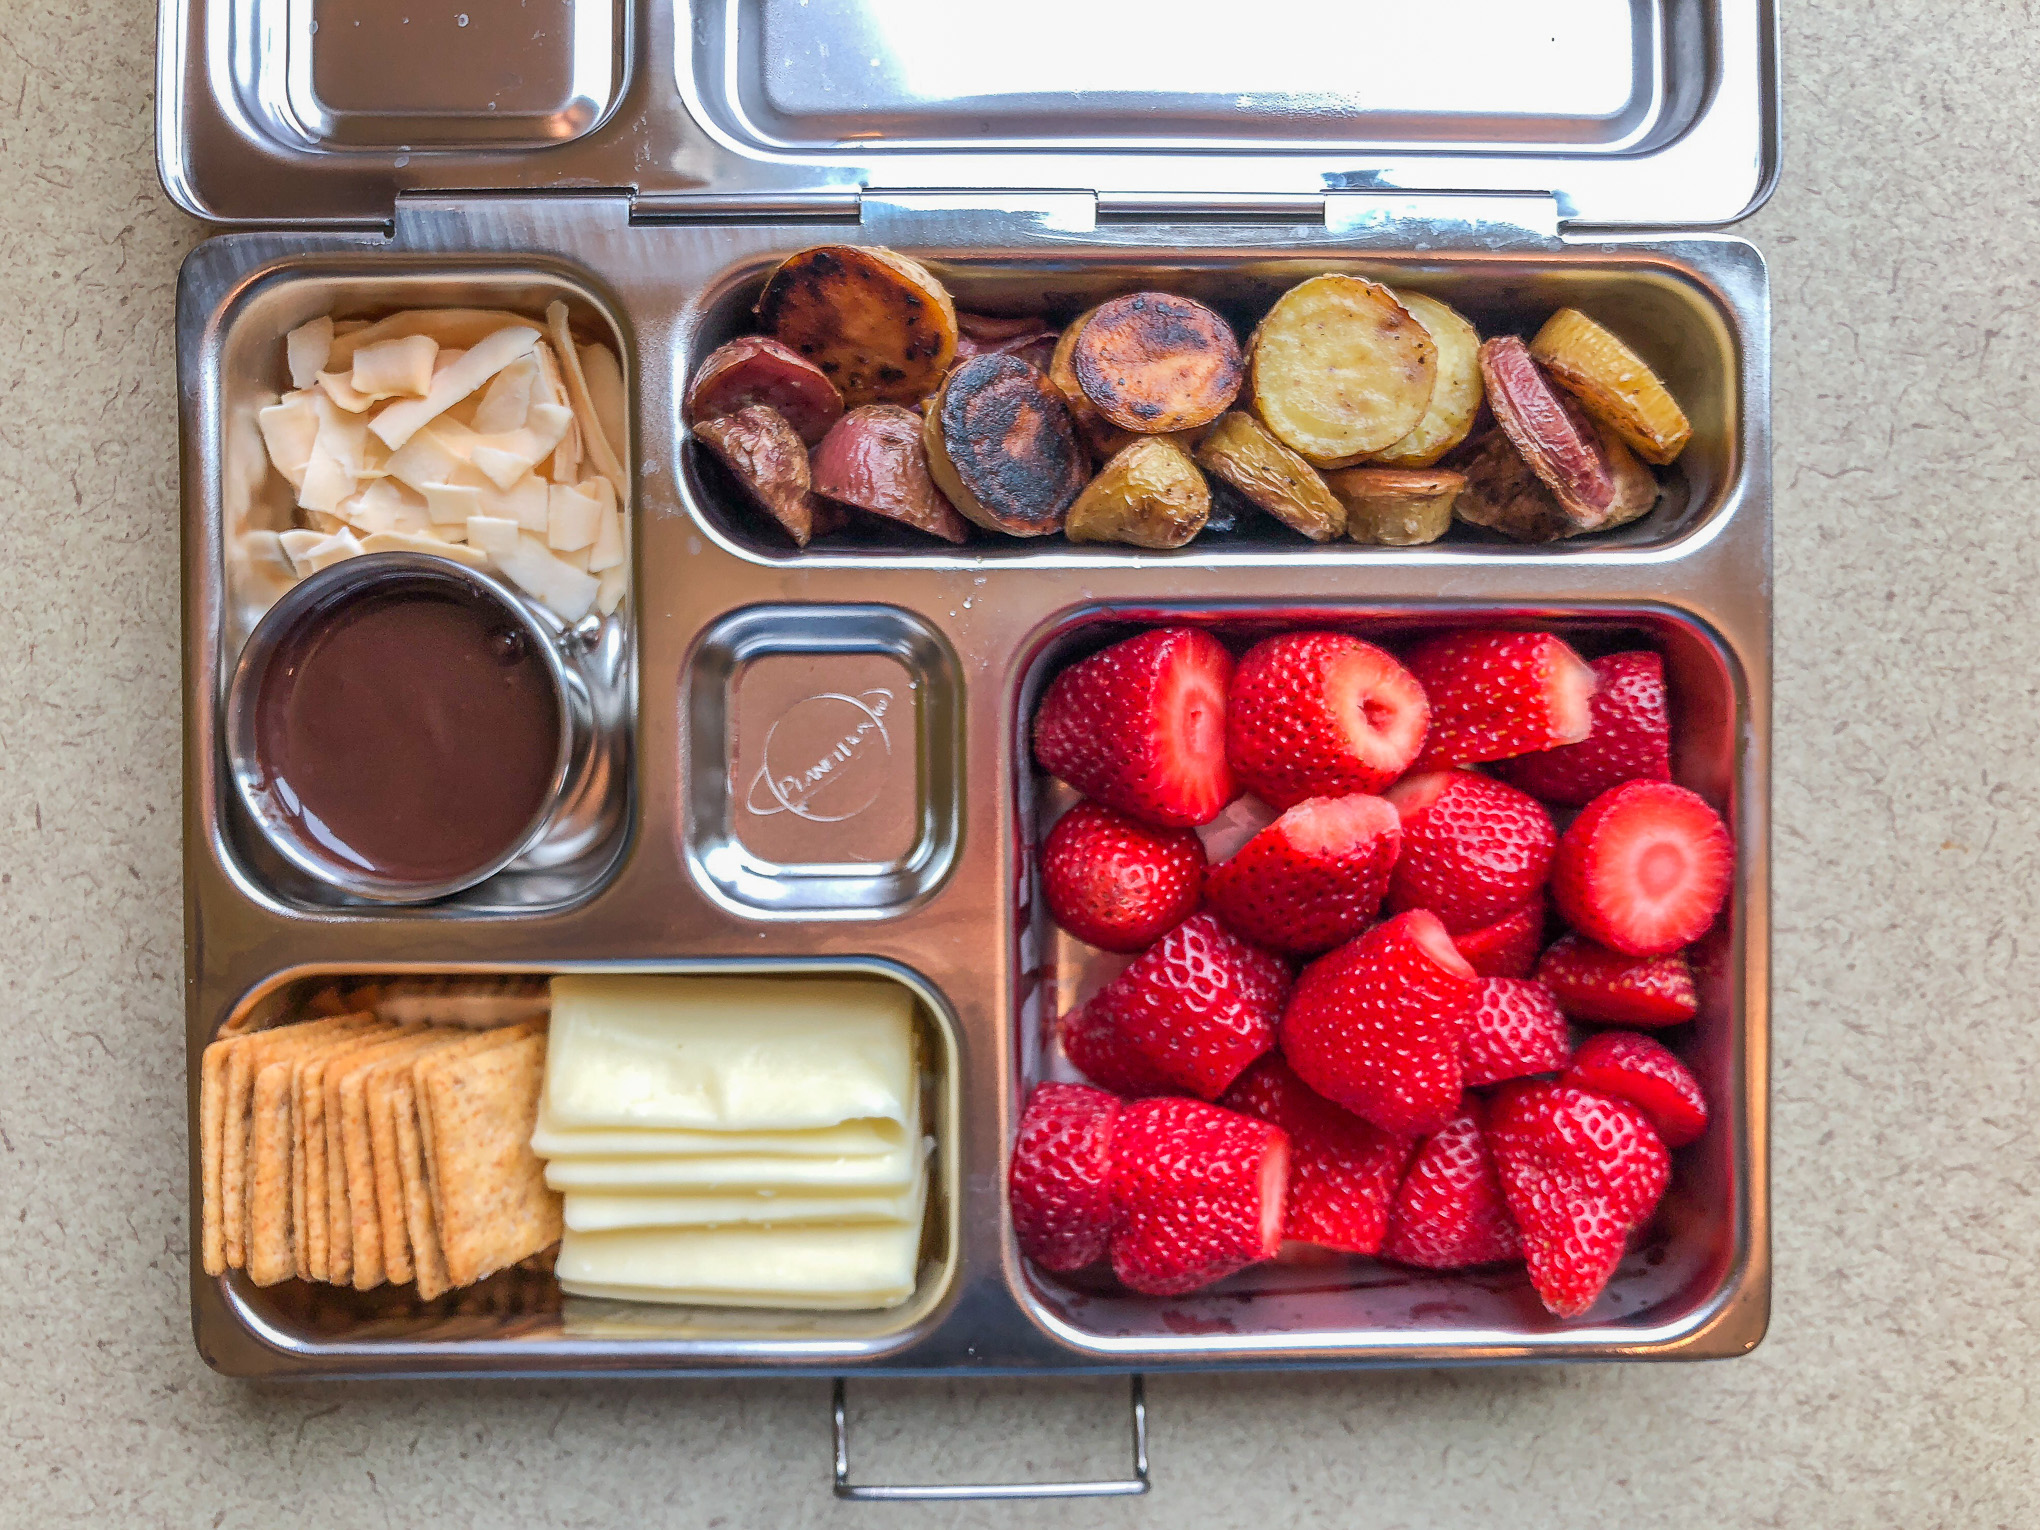 Metal lunchbox filled with fruit and veggies